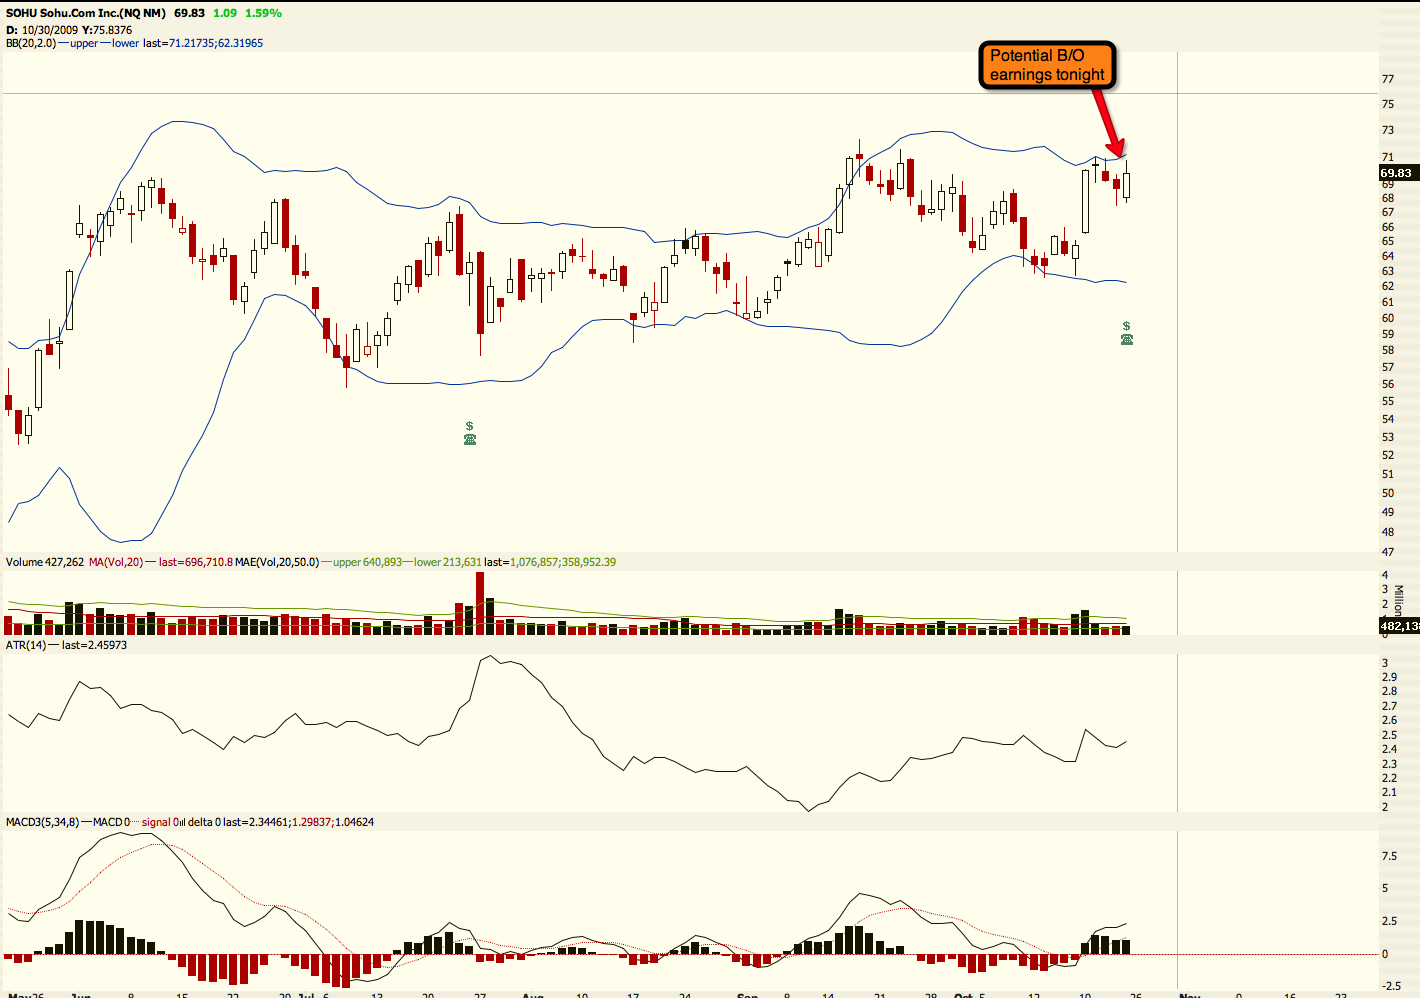 SOHU potential flag break-out